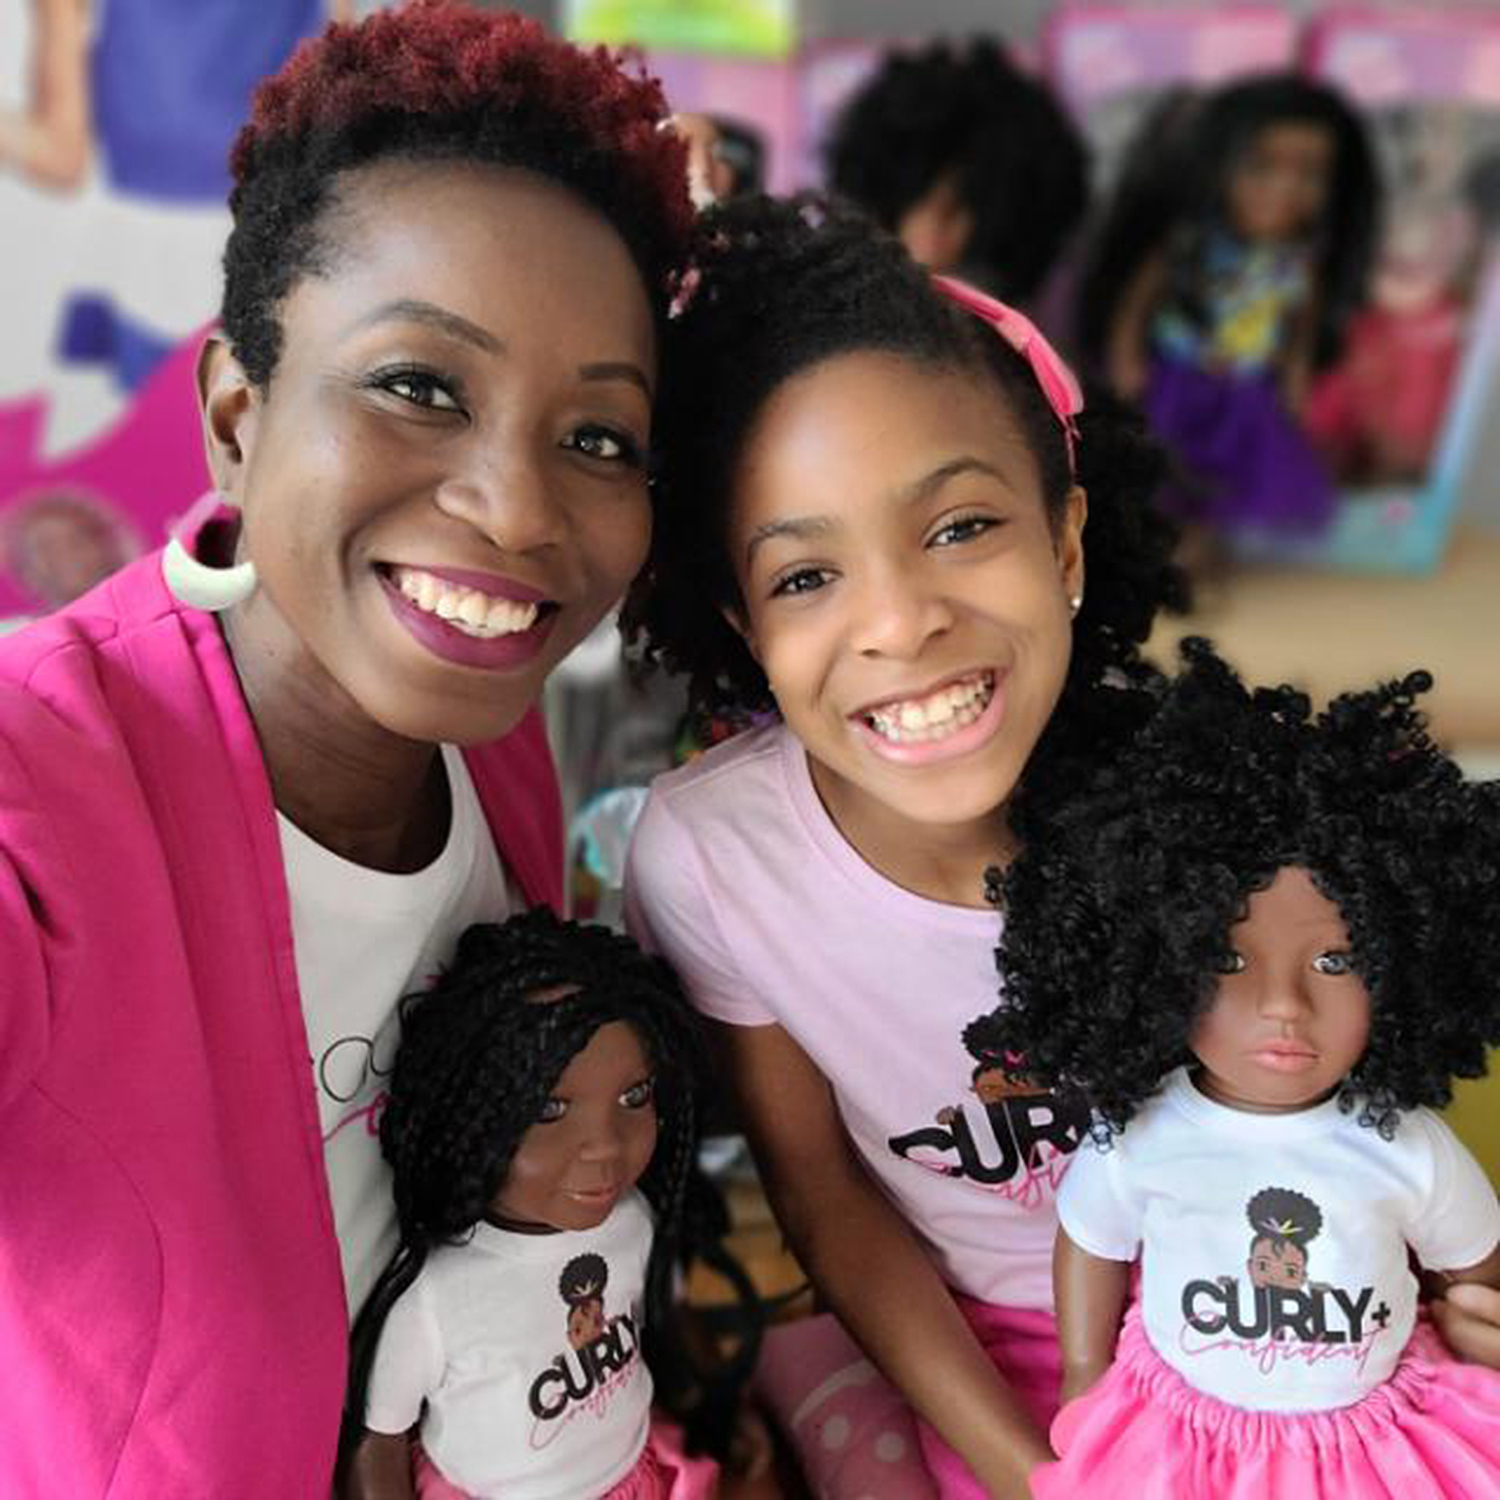 9-Year-Old CEO Empowering Black Girls to Embrace Their Hair Through Line of Dolls With Curls